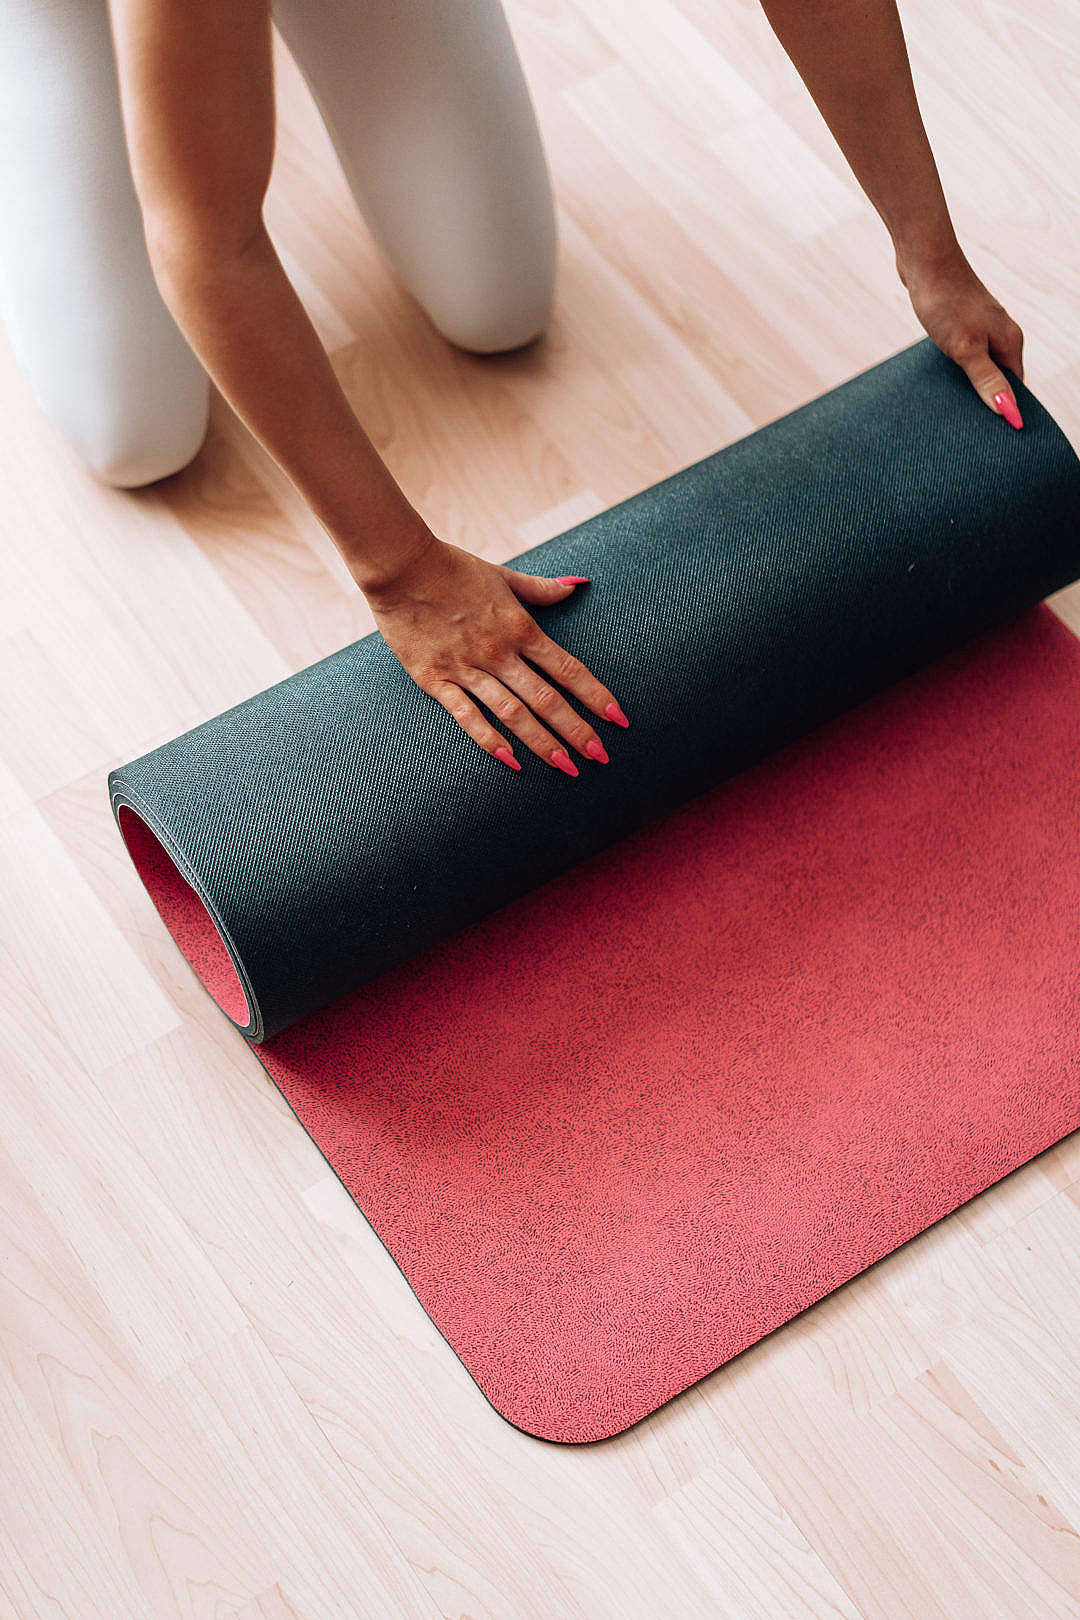 Download Yoga Mat Home Exercise FREE Stock Photo